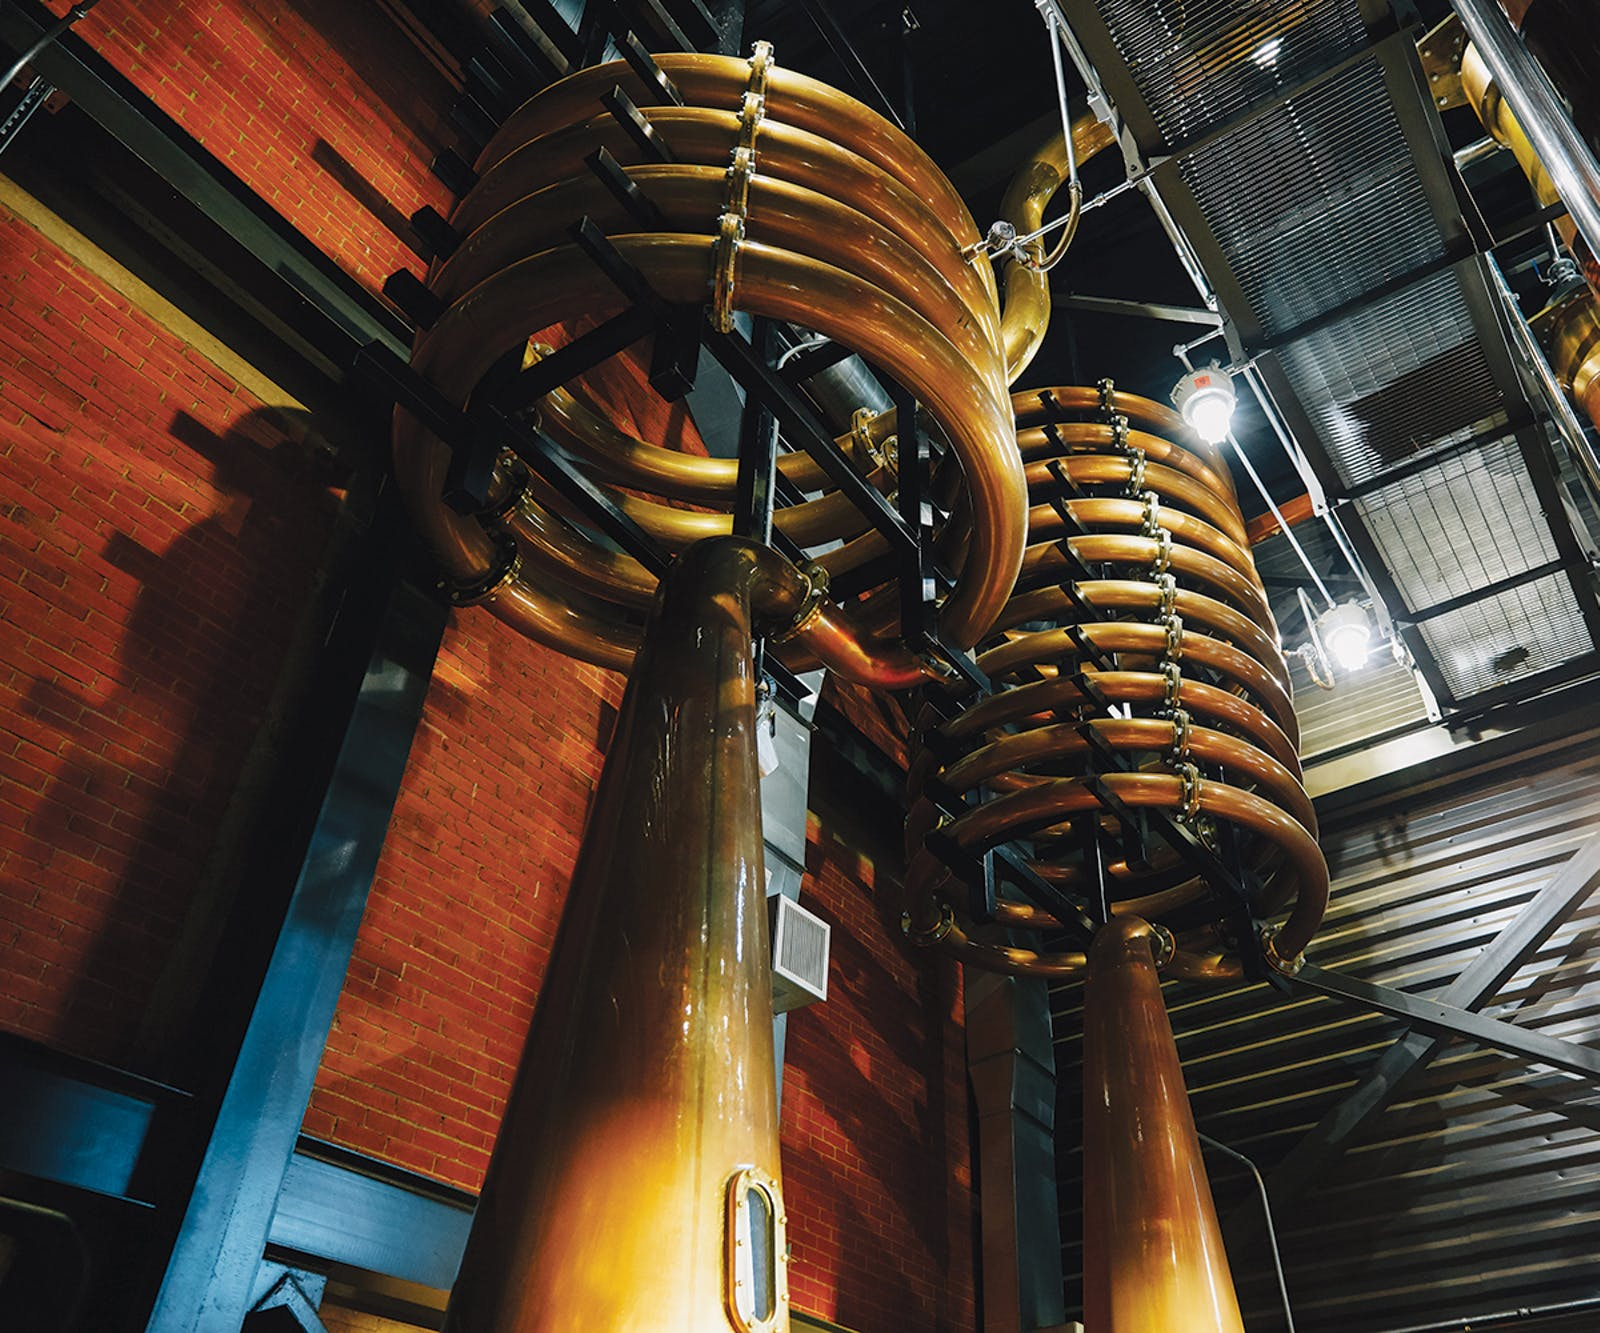 Texas whiskey spirit still at Balcones Distilling